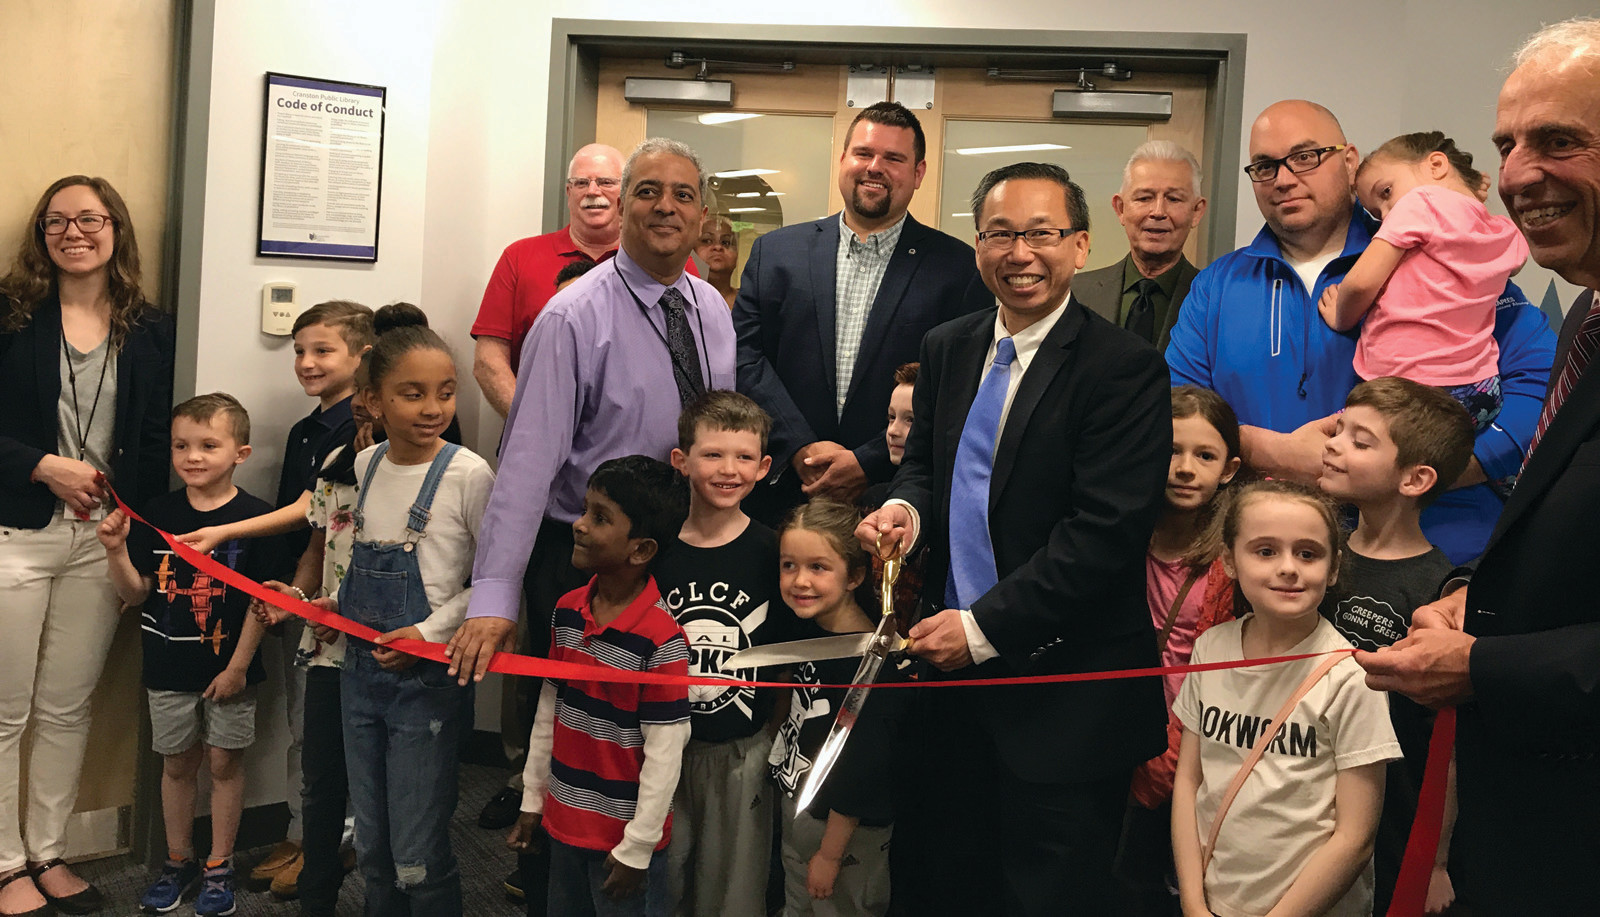 NOW IT'S OFFICIAL: Mayor Allan Fung and his helpers cut the ceremonial ribbon to re-open the Children's Room at Cranston Central Library on Saturday, June 3.